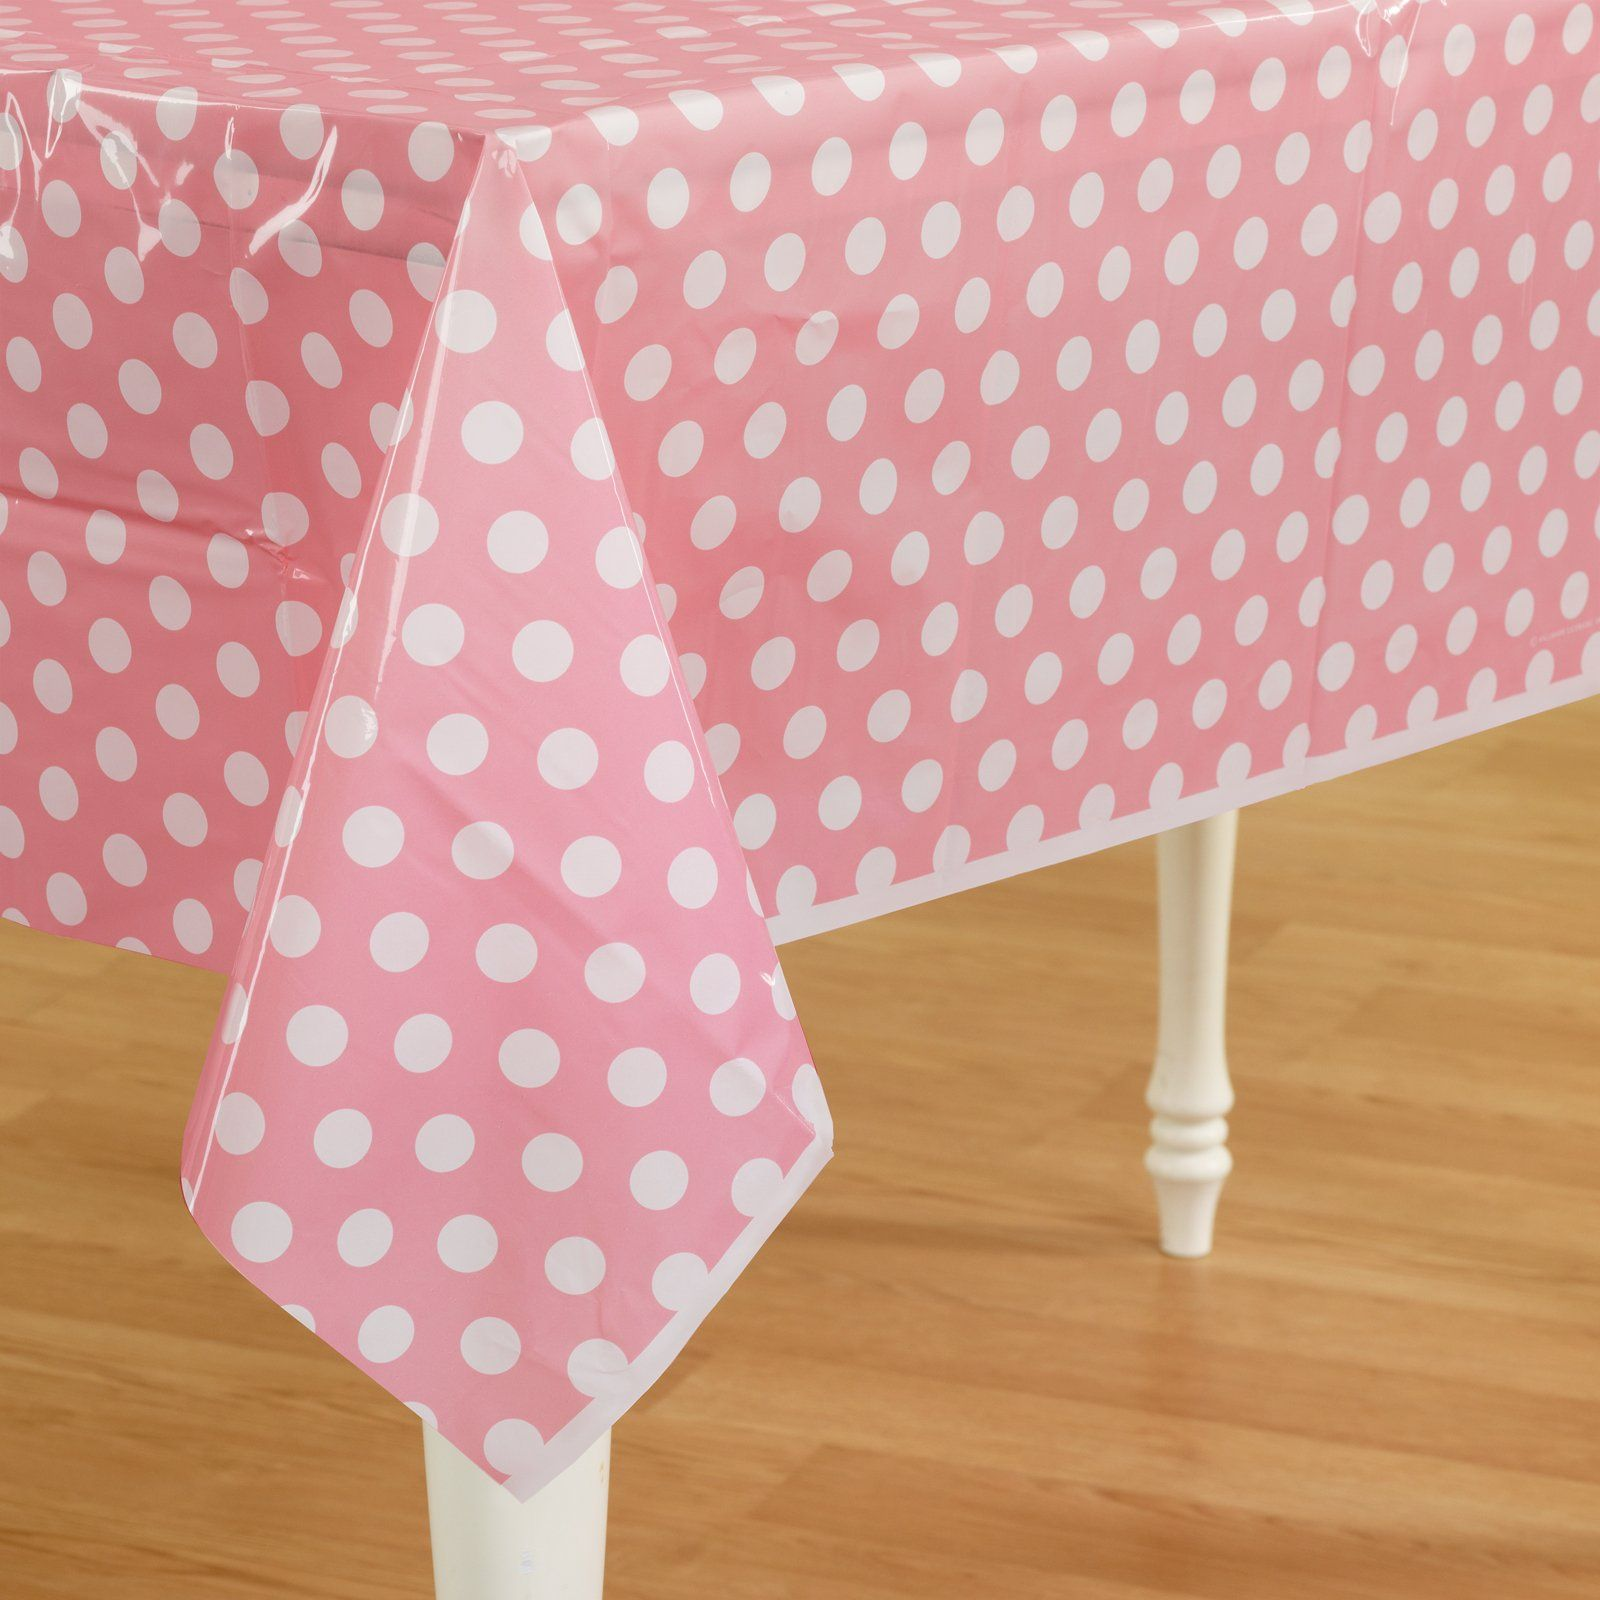 Light Pink Polka Dot Plastic Tablecover   $2.03   Tablecloth   Table Covers  At AWise.